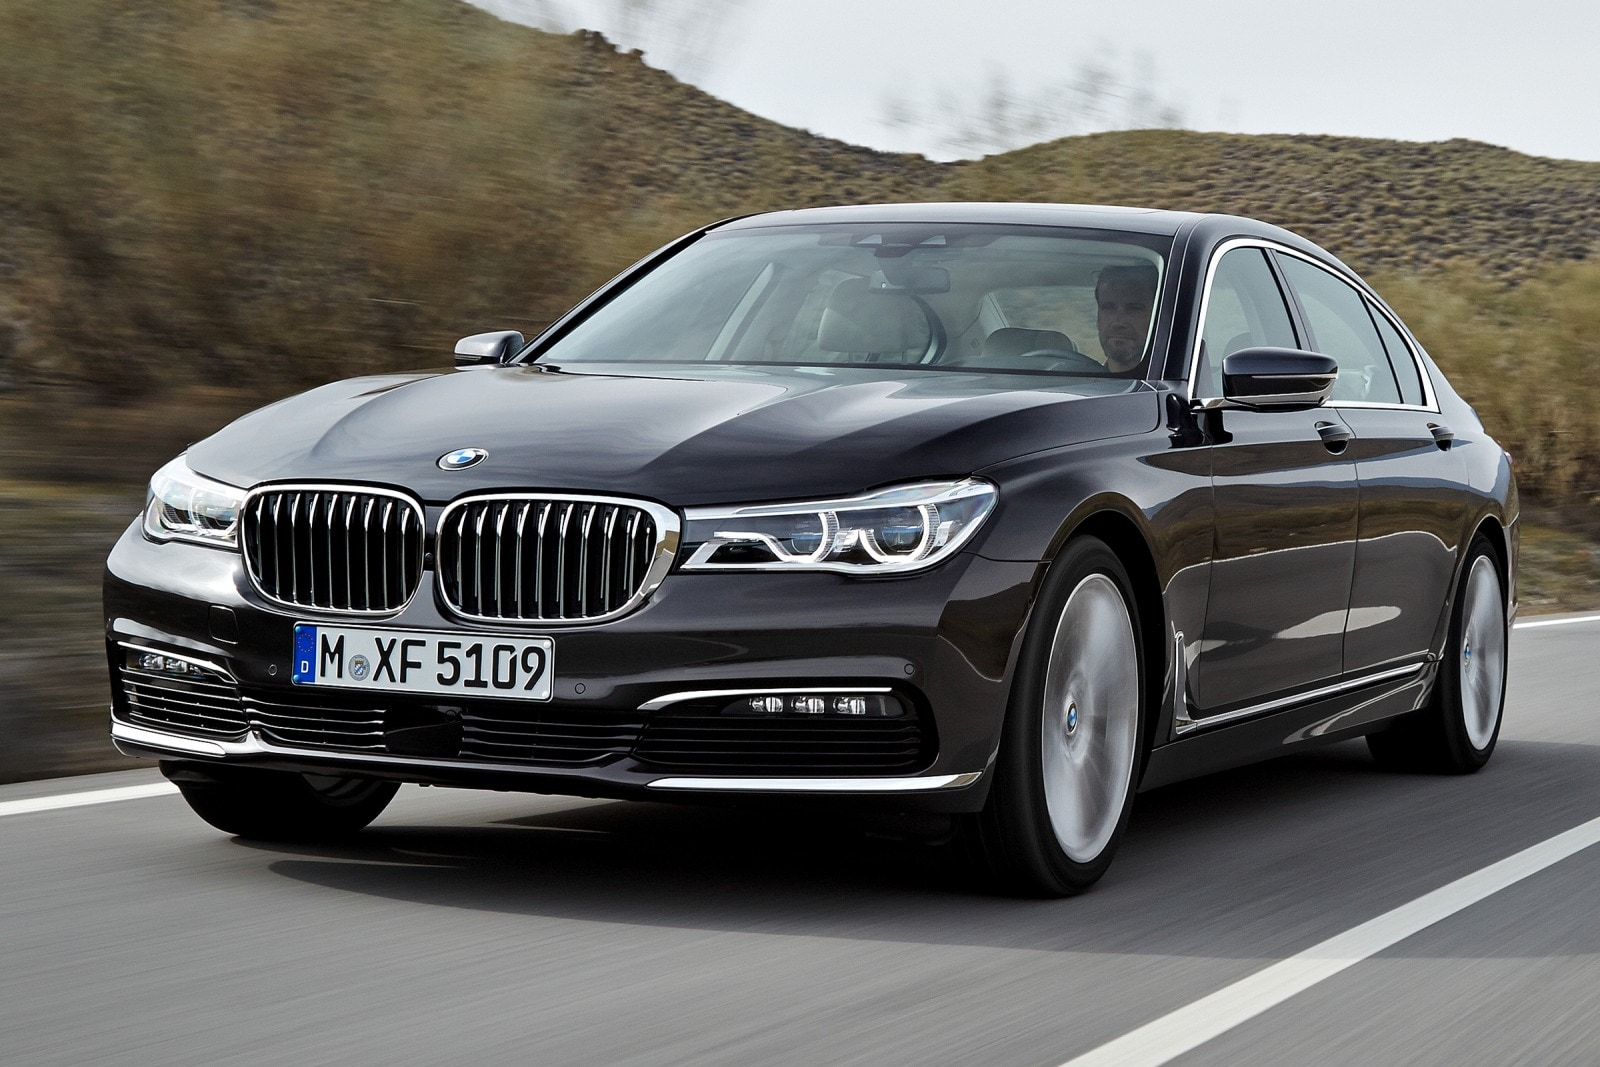 hight resolution of a stretched wheelbase comes standard on the 2017 bmw 7 series but the sleek styling does an admirable job of hiding it